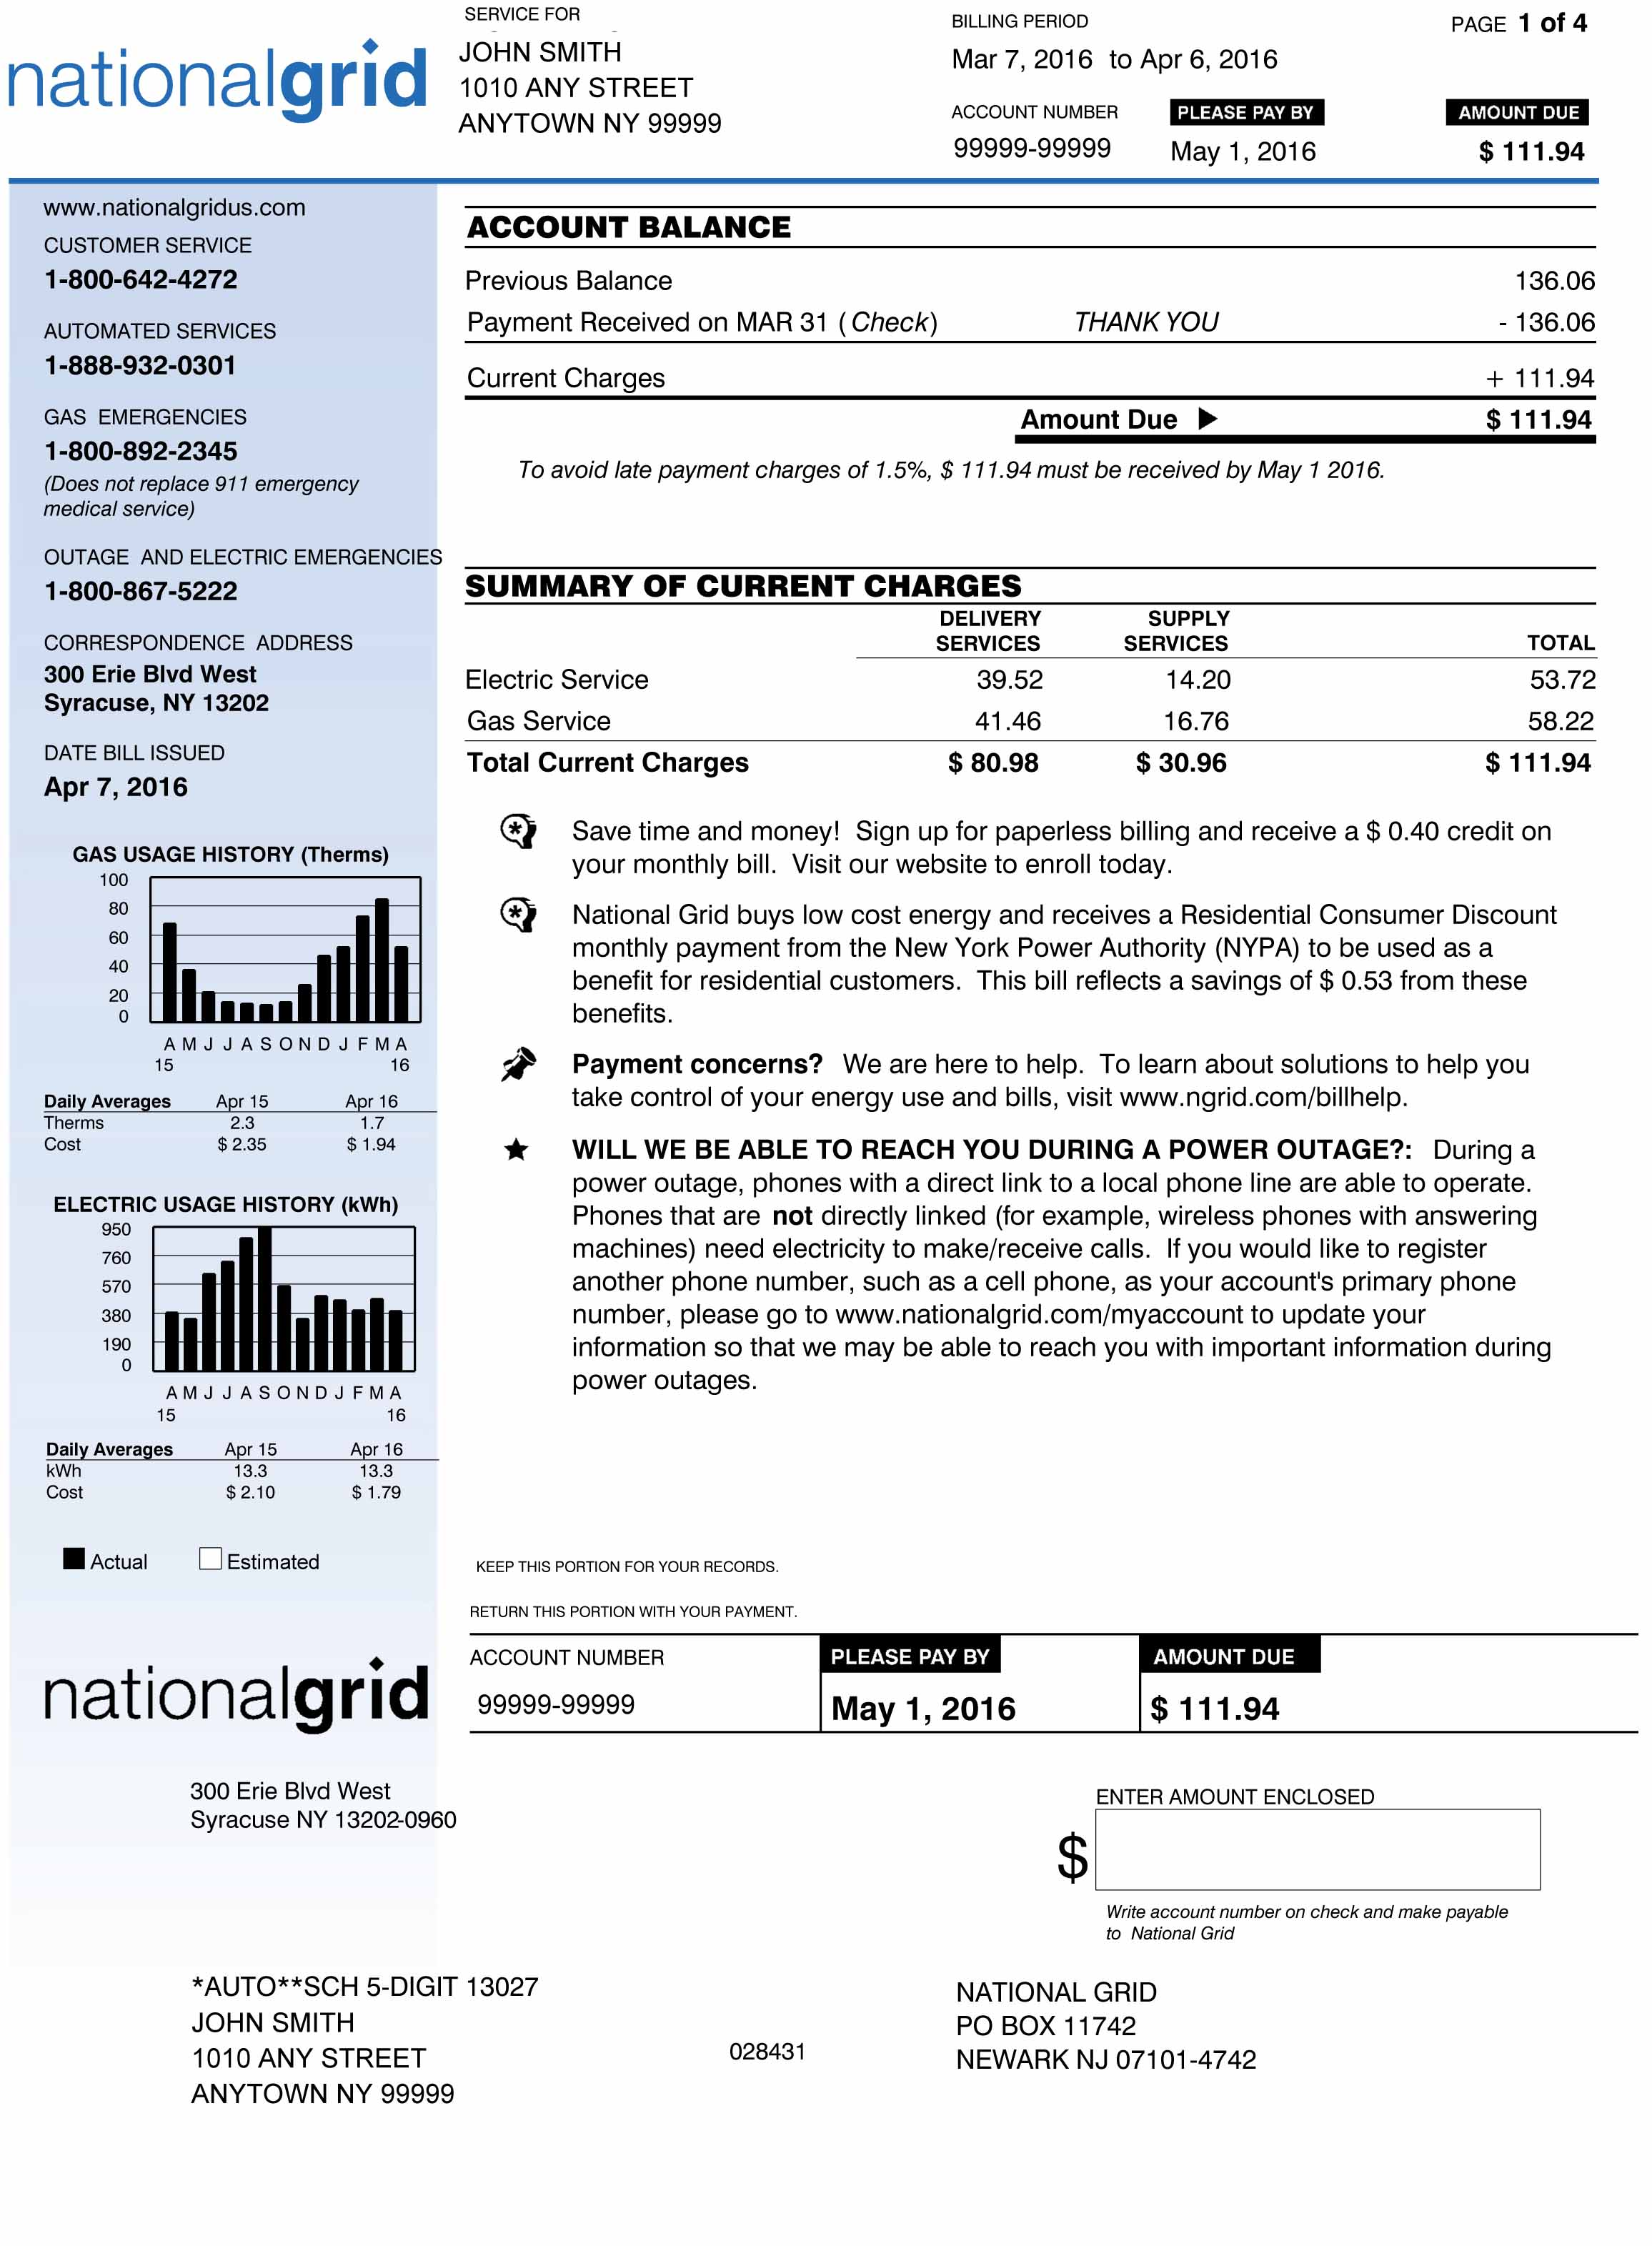 Understanding Our Bills Amp Charges National Grid